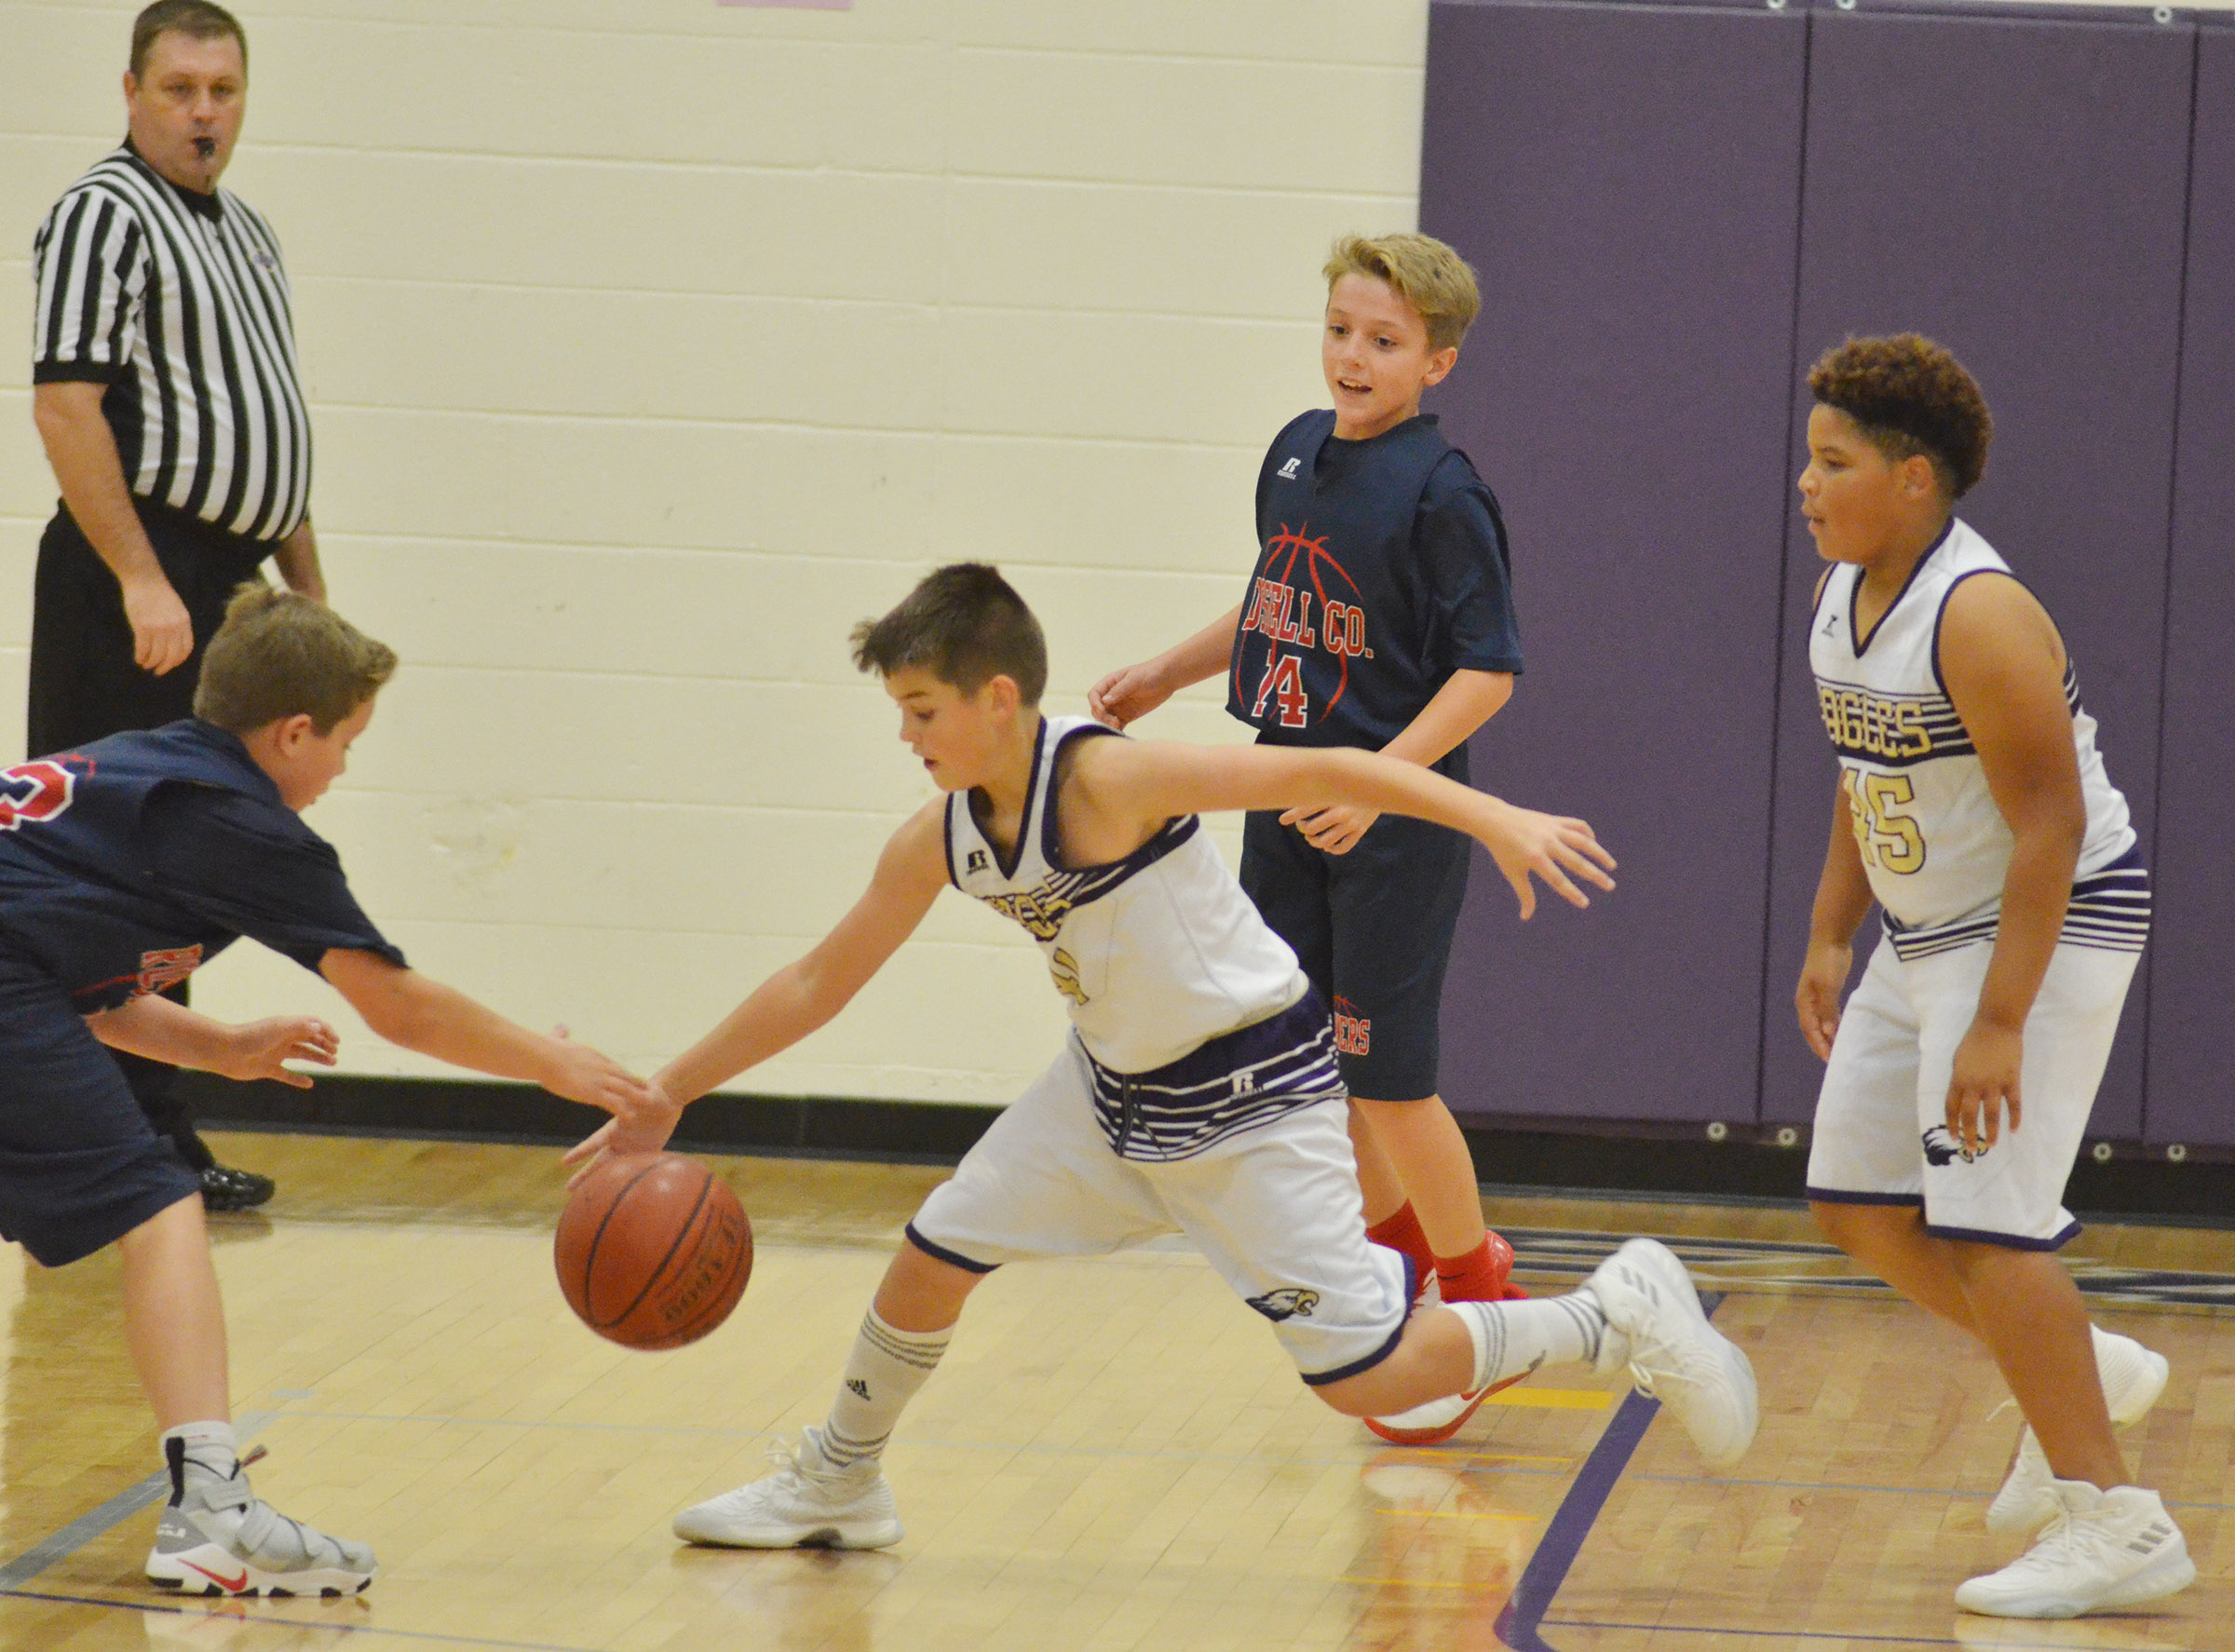 CMS sixth-graders Kaden Bloyd, at left, and Devin Kinser play defense.